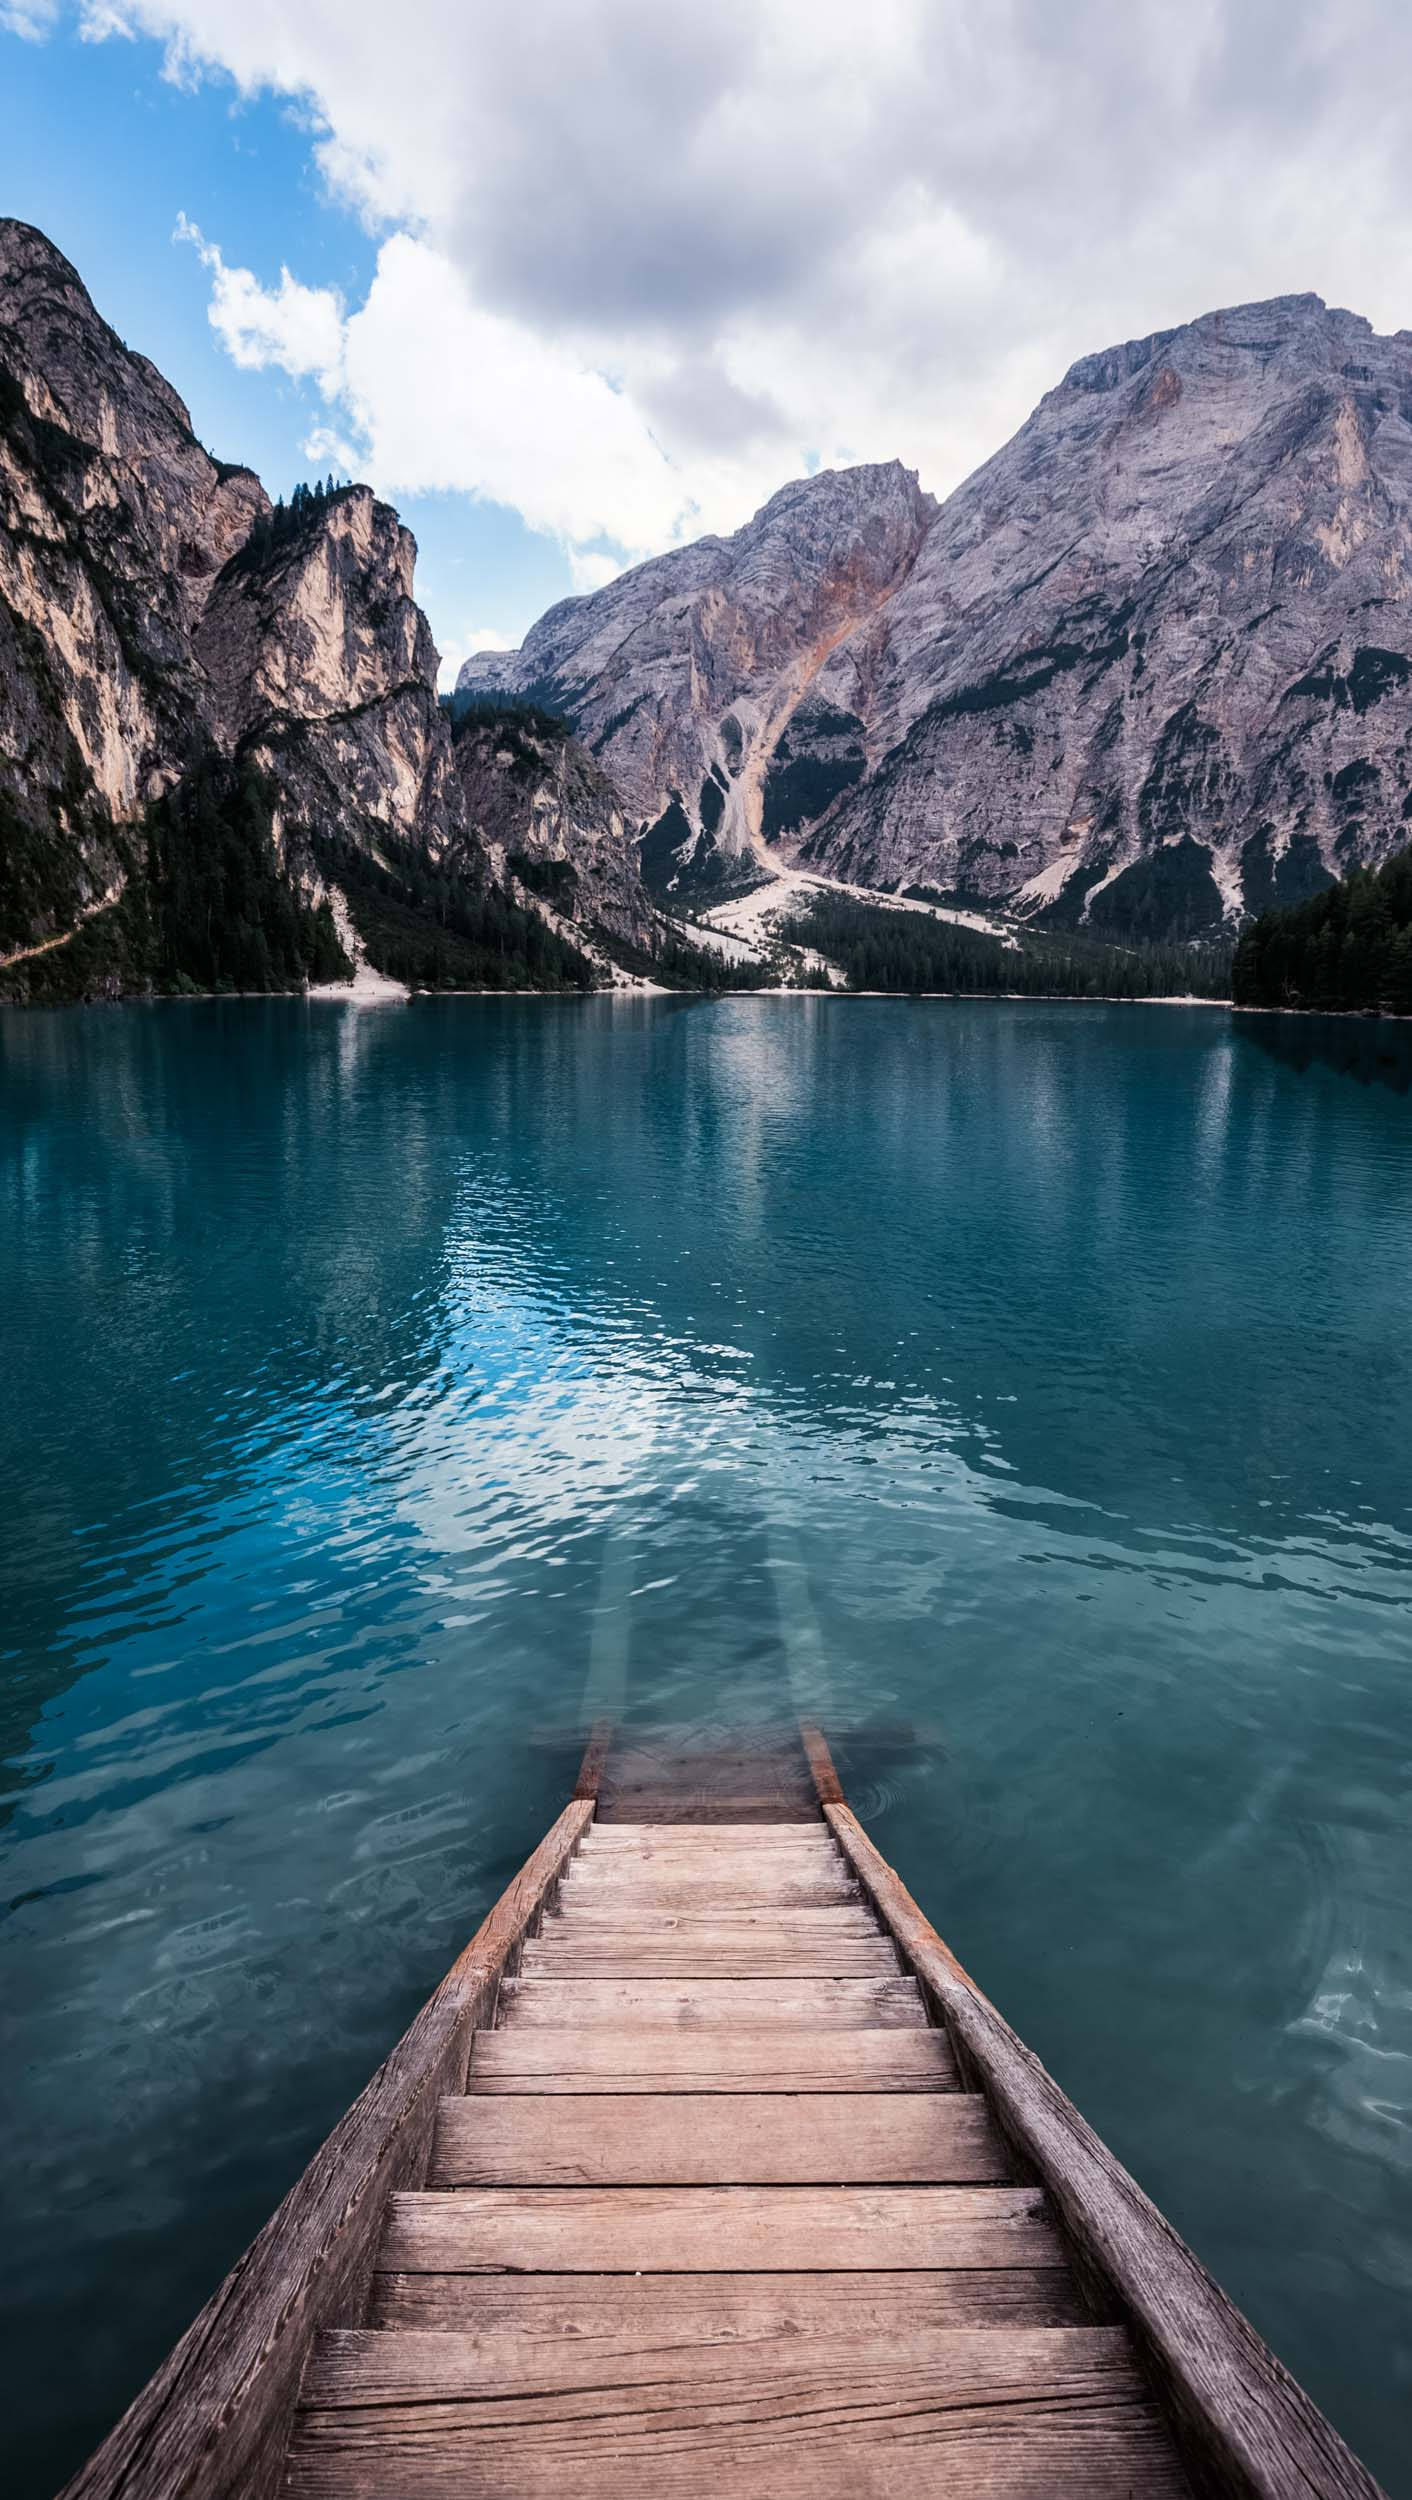 Pragser Wildsee in South Tirol.